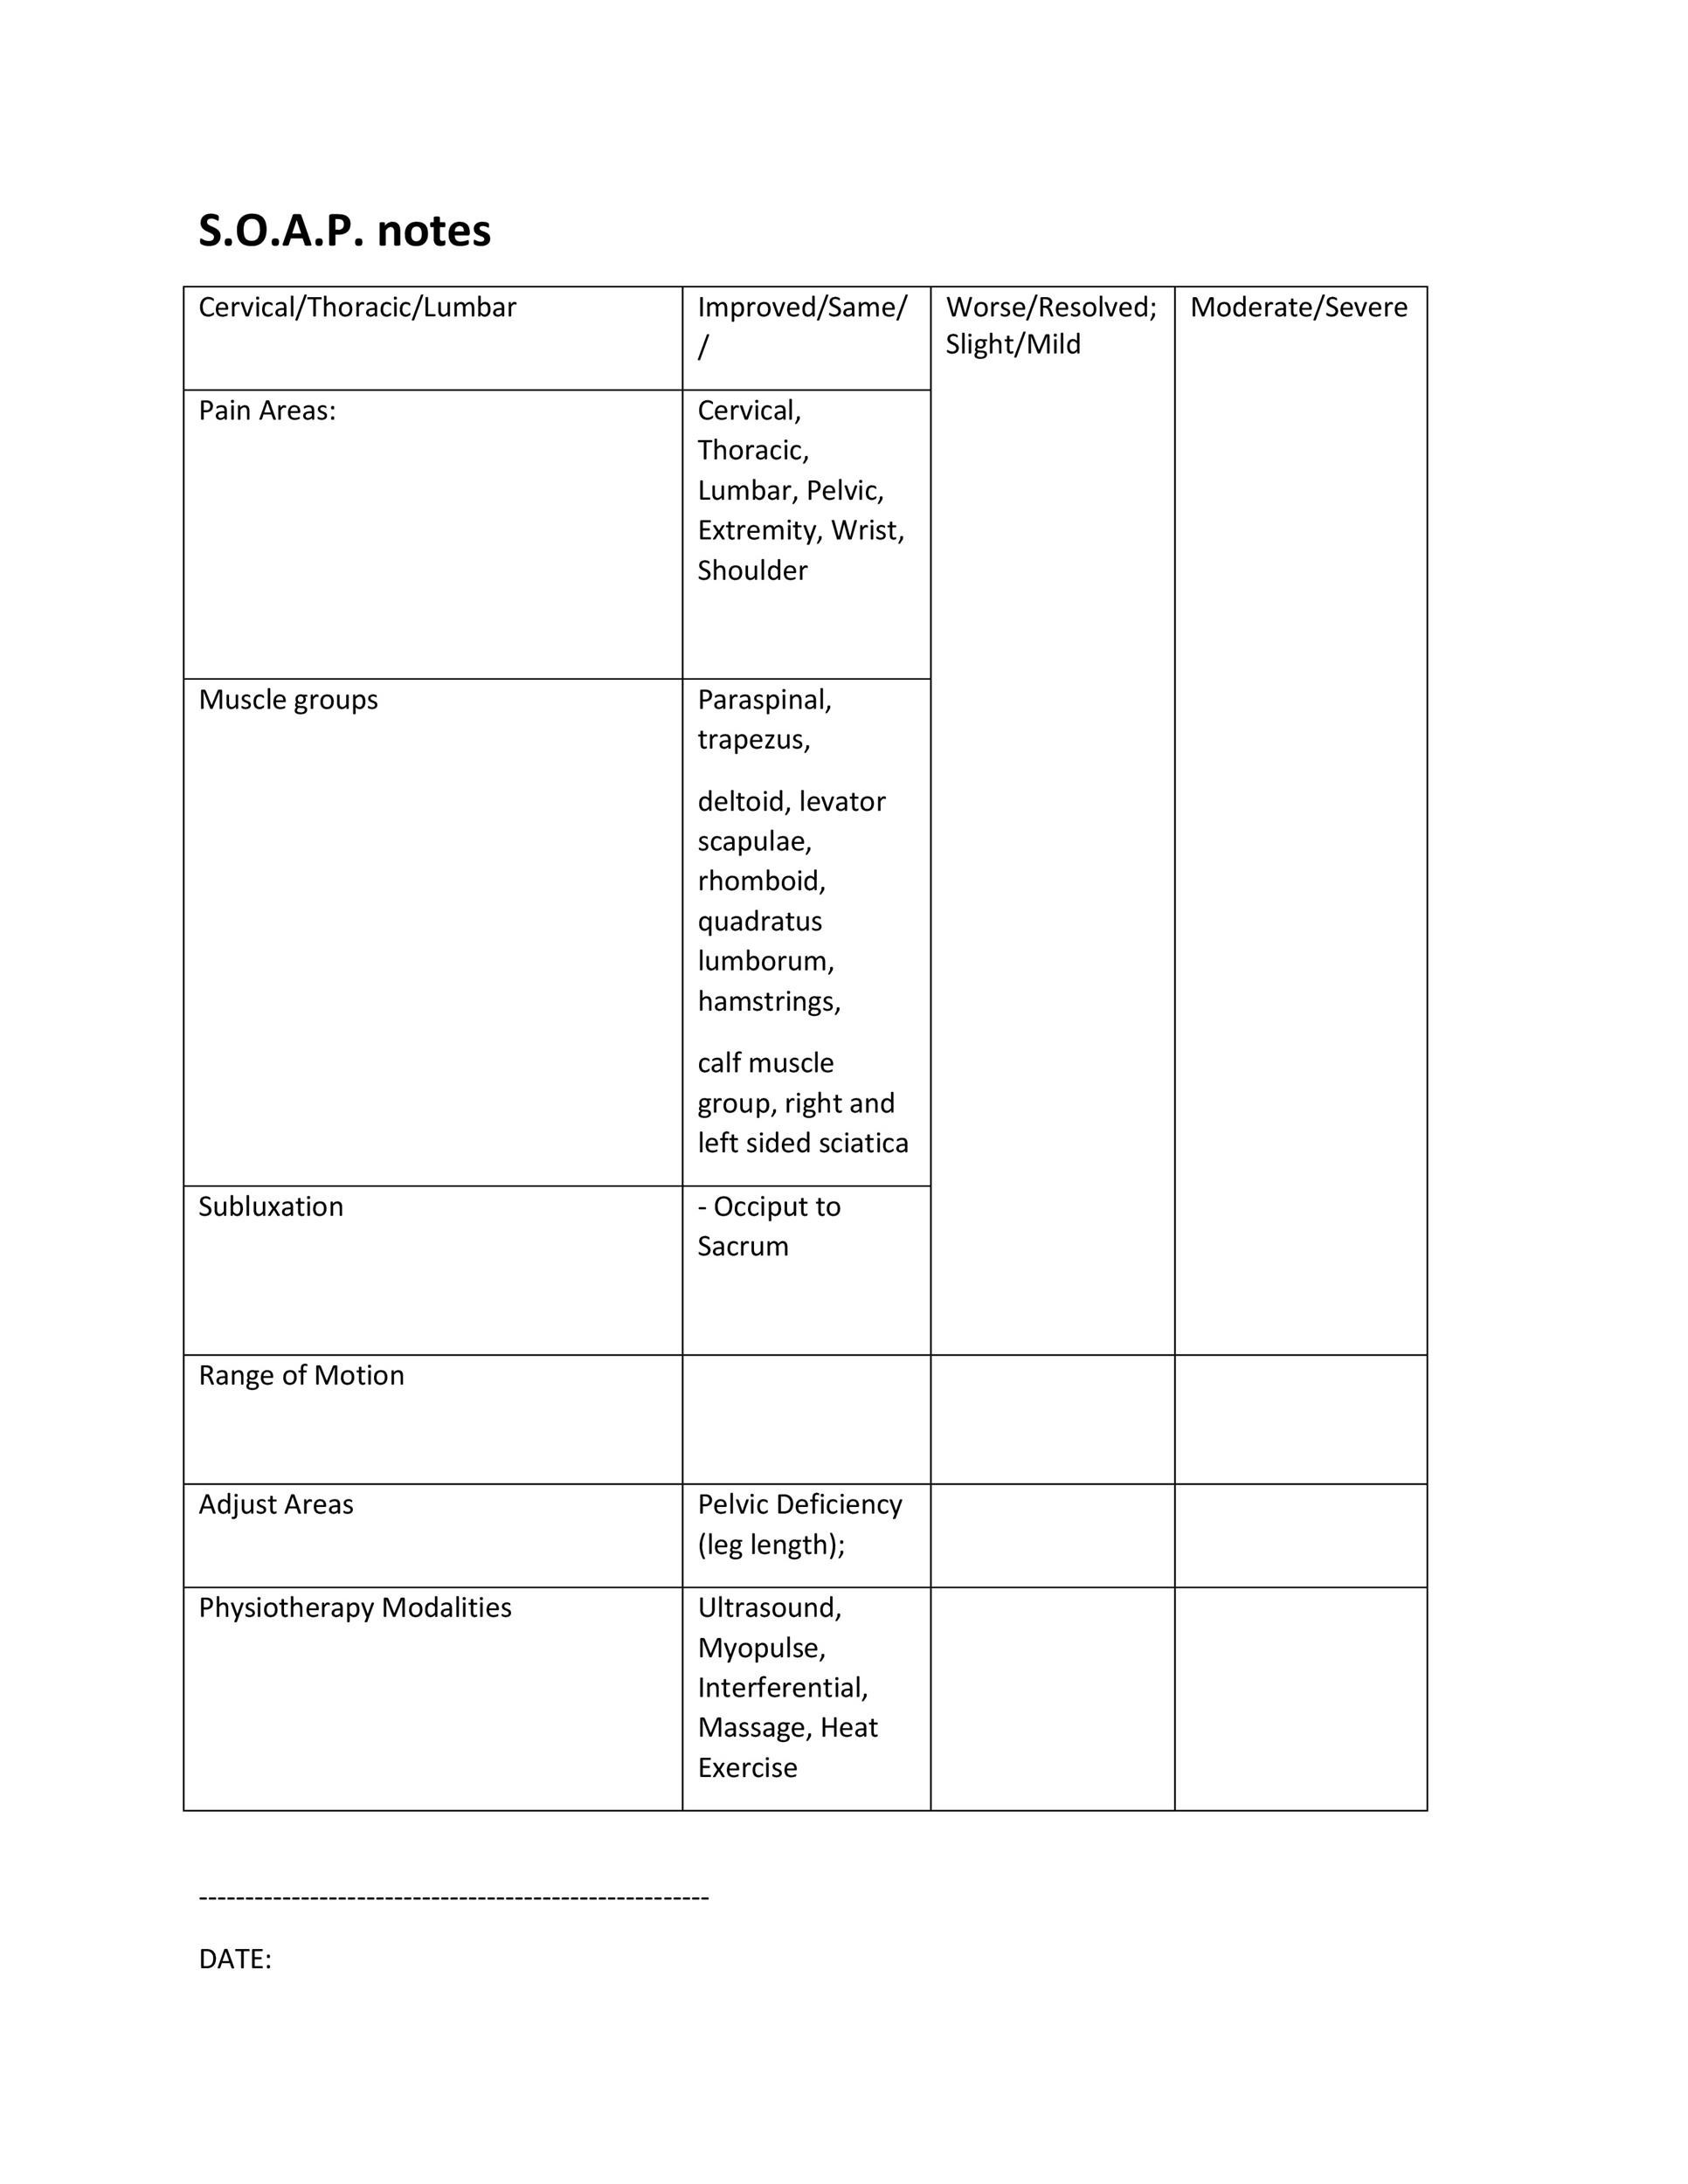 40 Fantastic SOAP Note Examples  Templates - Template Lab - soap note template